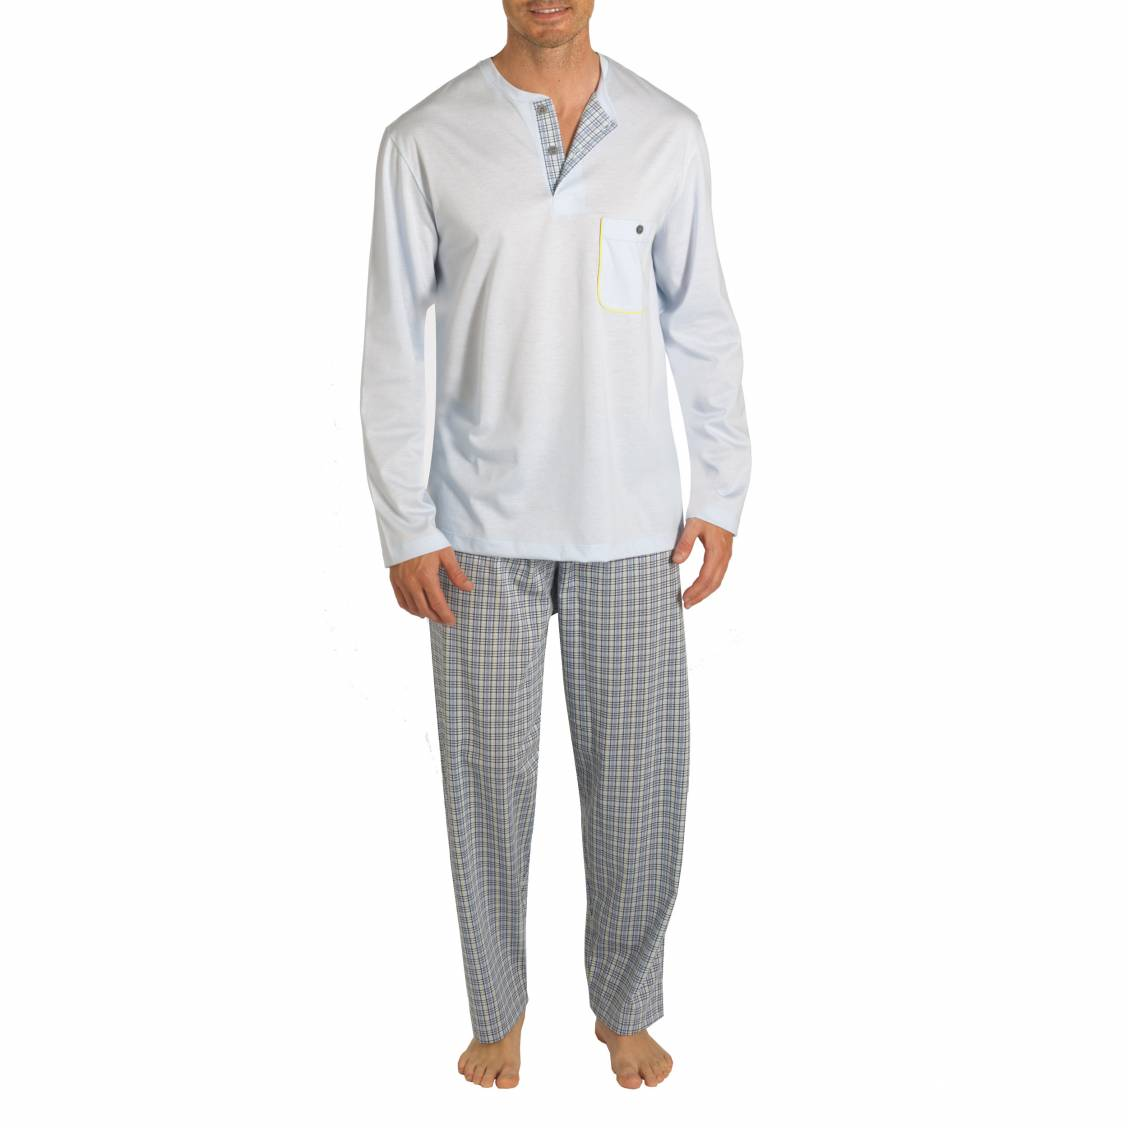 Pyjama long eminence 100 jersey de coton merceris bleu for Pyjama carreaux